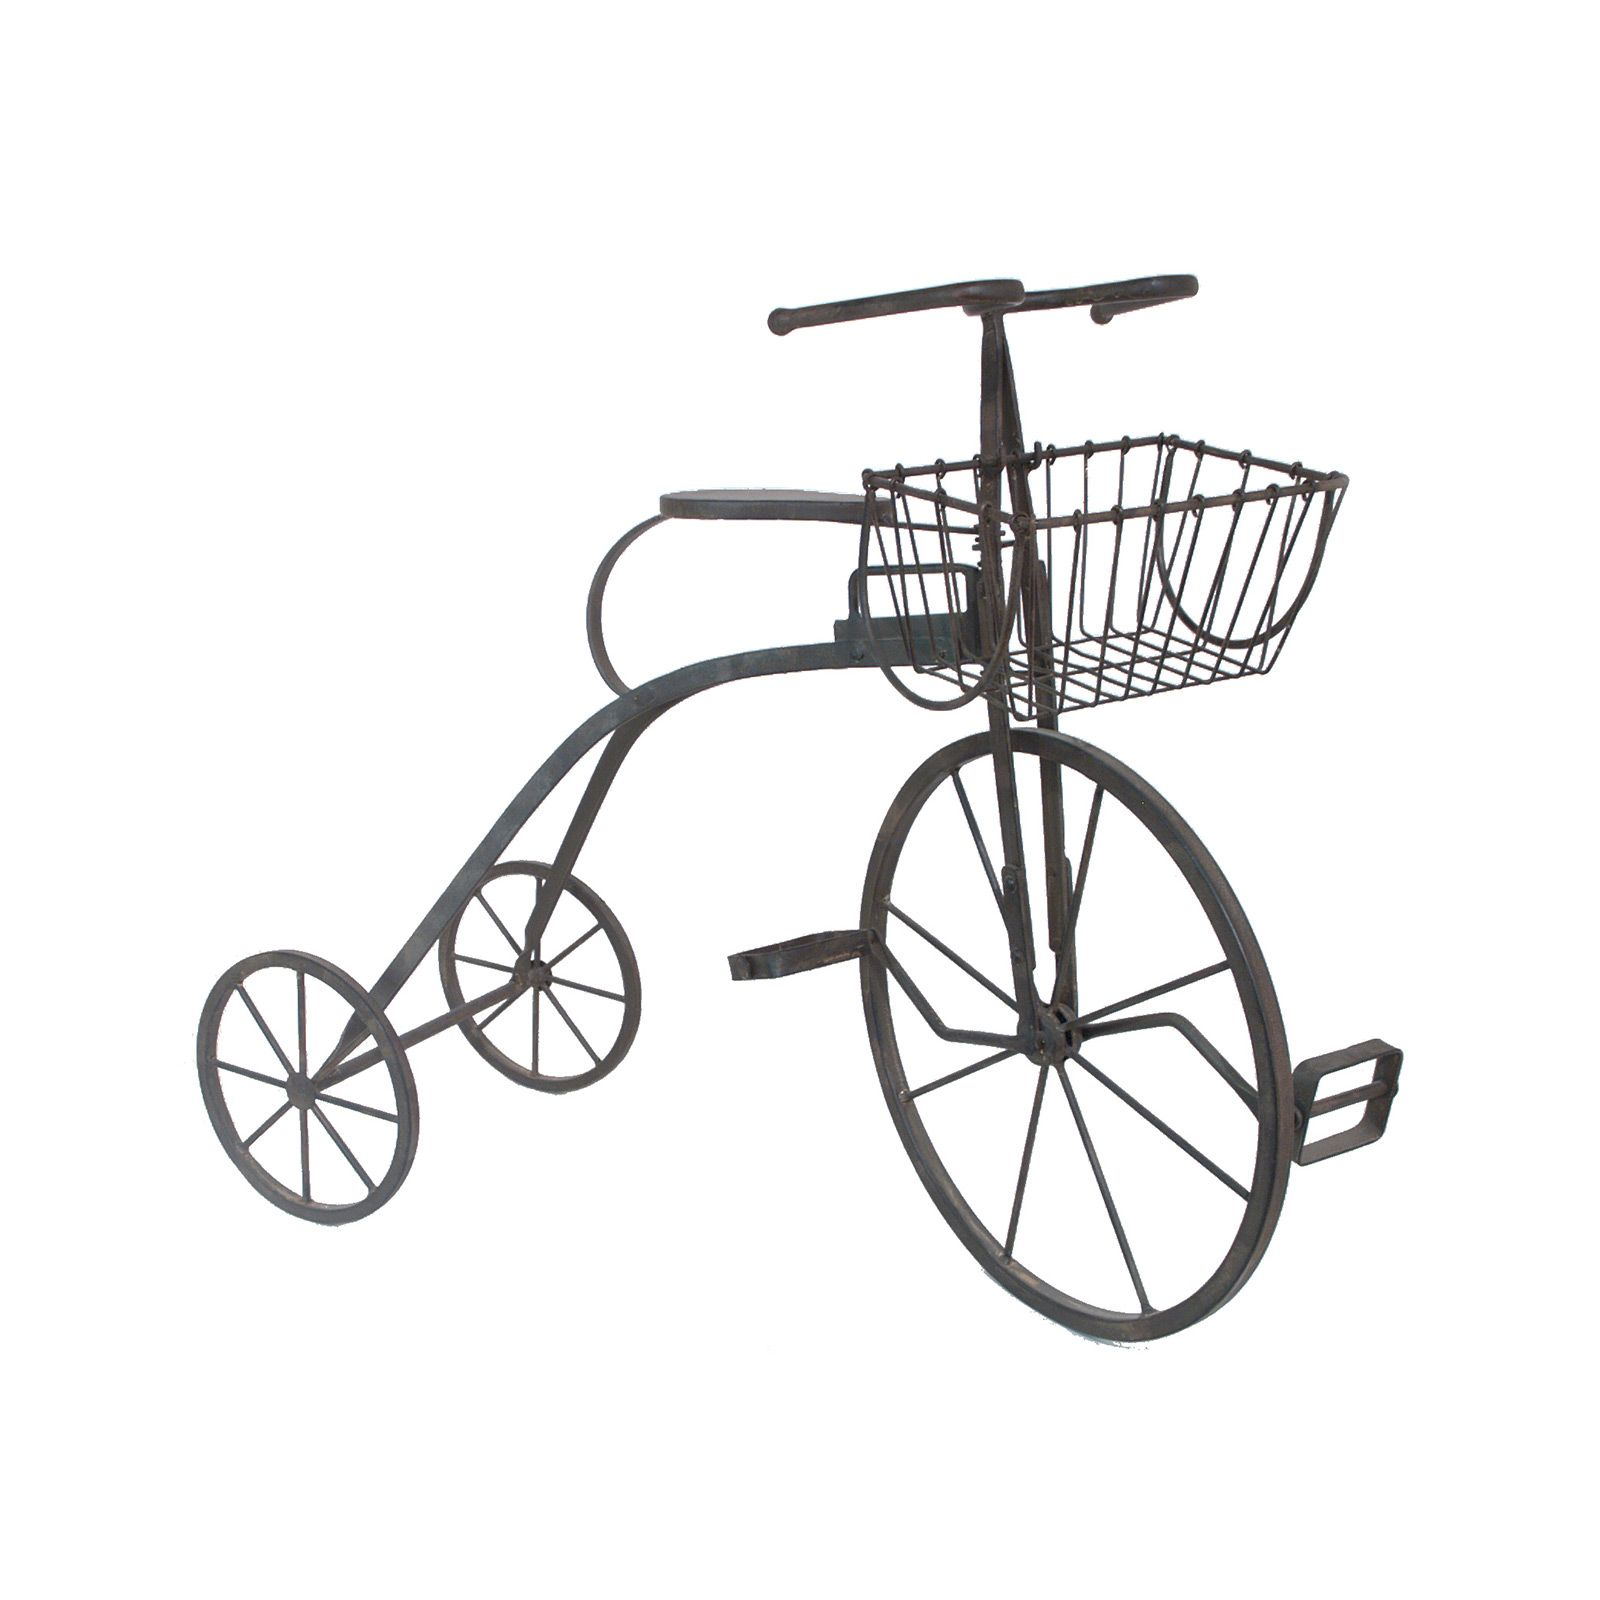 Furniture and Décor for the Modern Lifestyle Bicycle